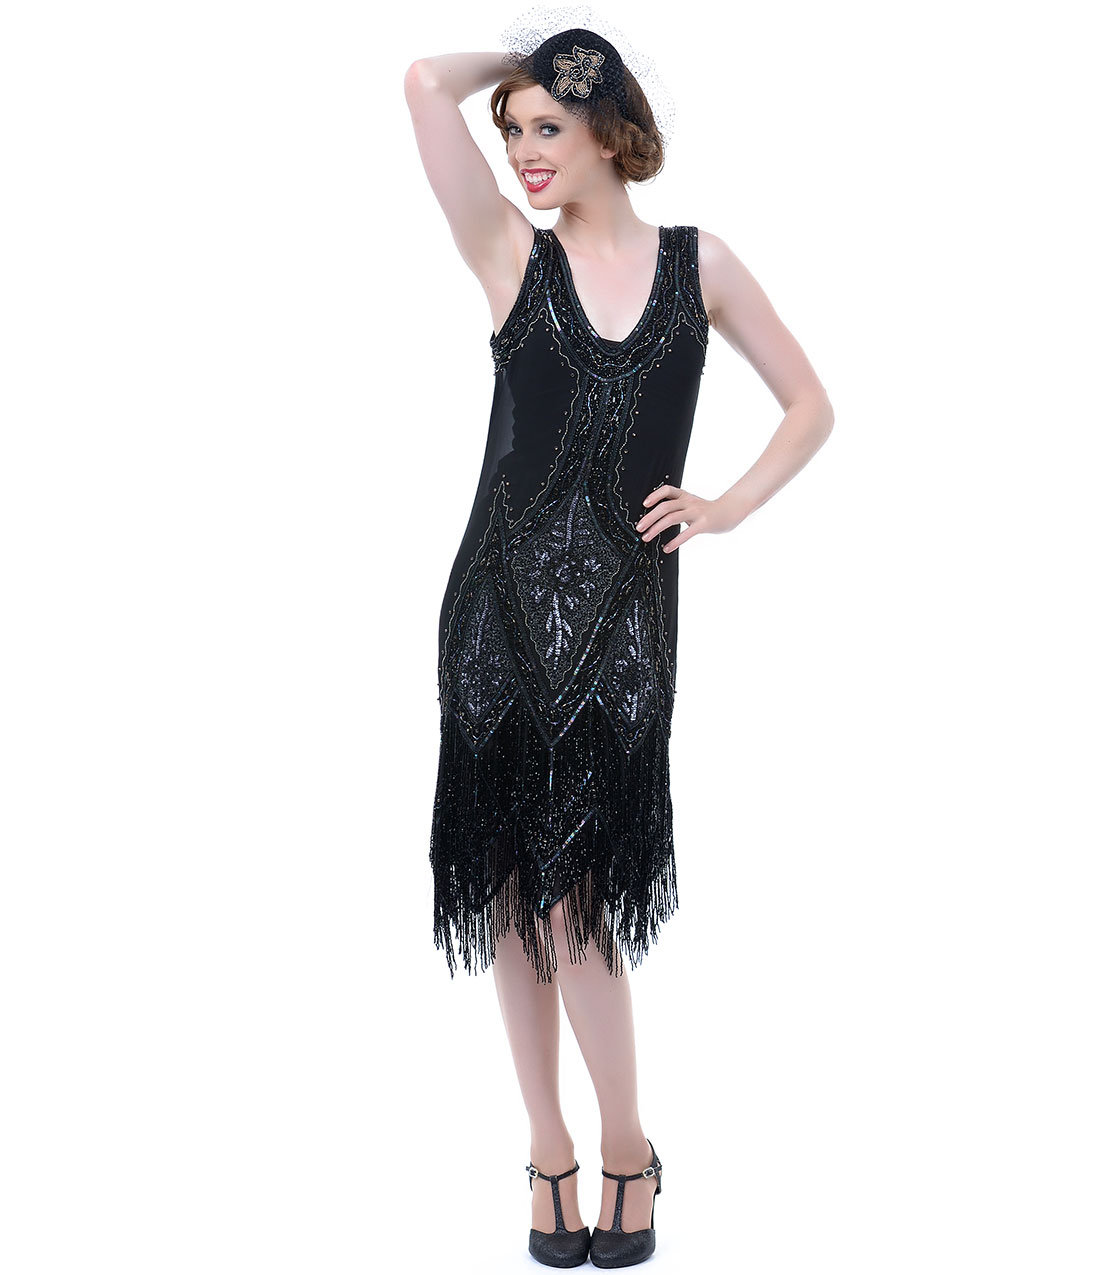 All Black Embroidered Reproduction 1920s from Unique Vintage